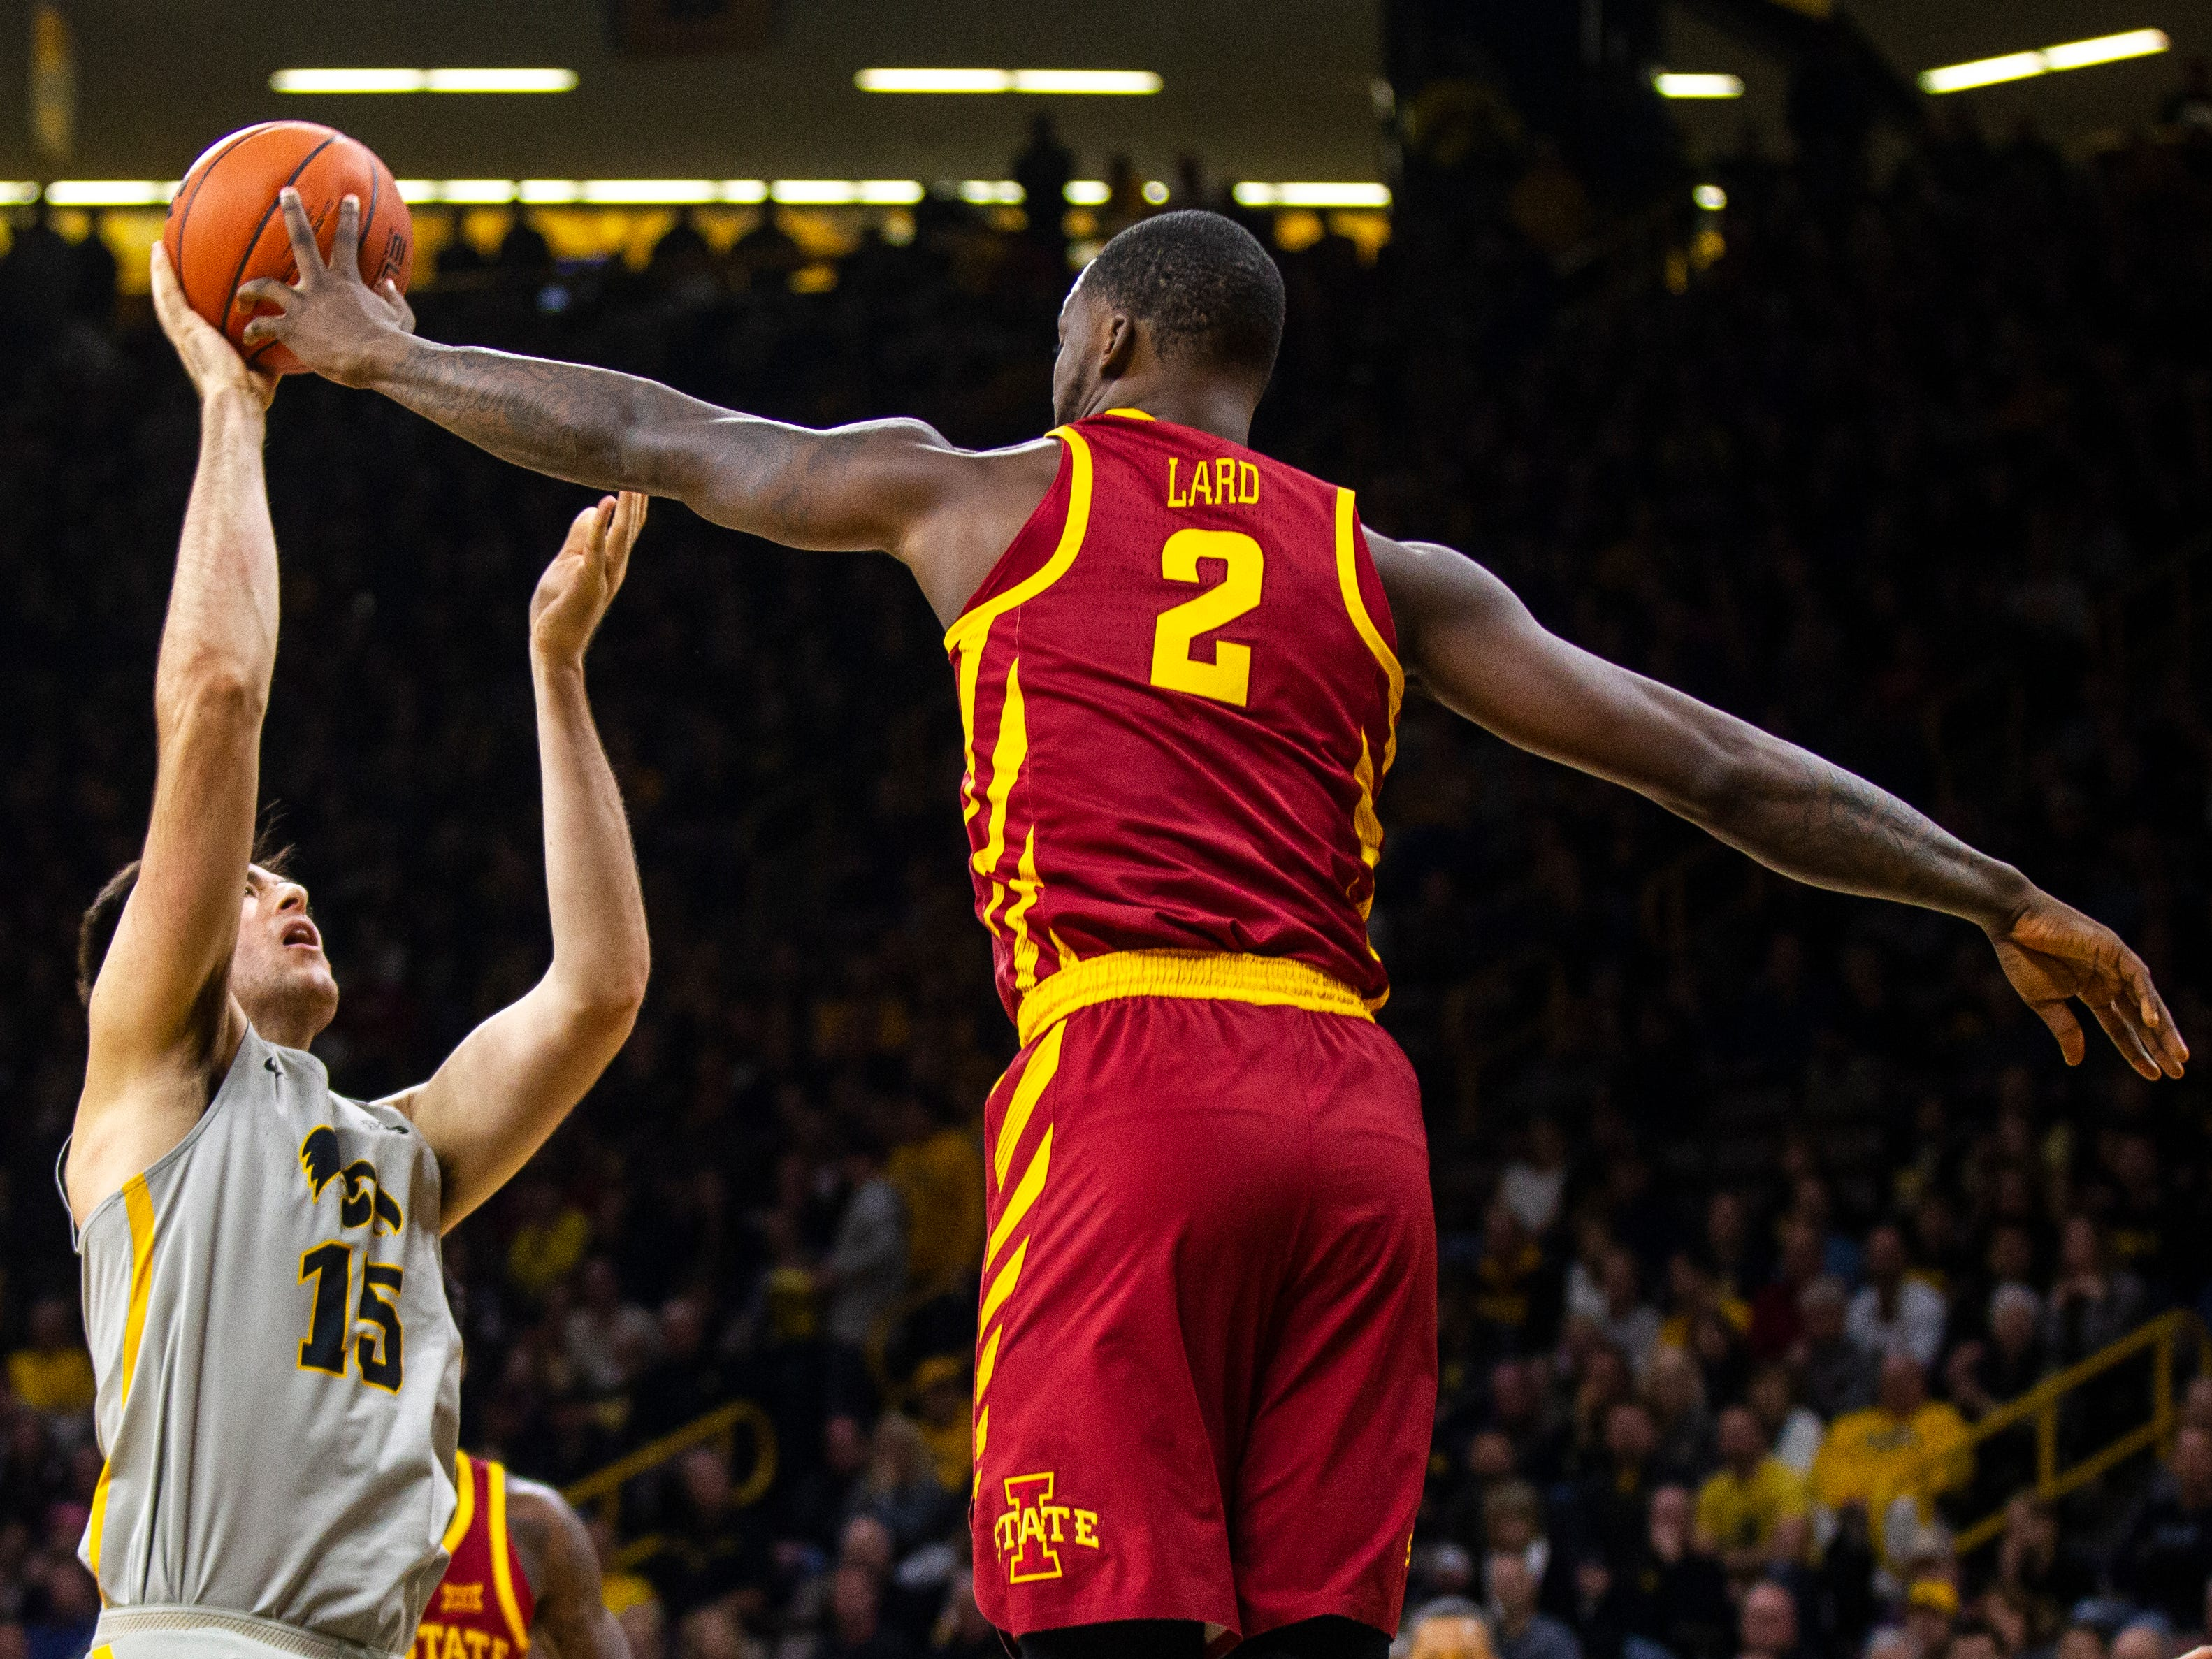 Iowa State forward Cameron Lard (2) blocks Iowa forward Ryan Kriener's shot during a NCAA Cy-Hawk series men's basketball game on Thursday, Dec. 6, 2018, at Carver-Hawkeye Arena in Iowa City.